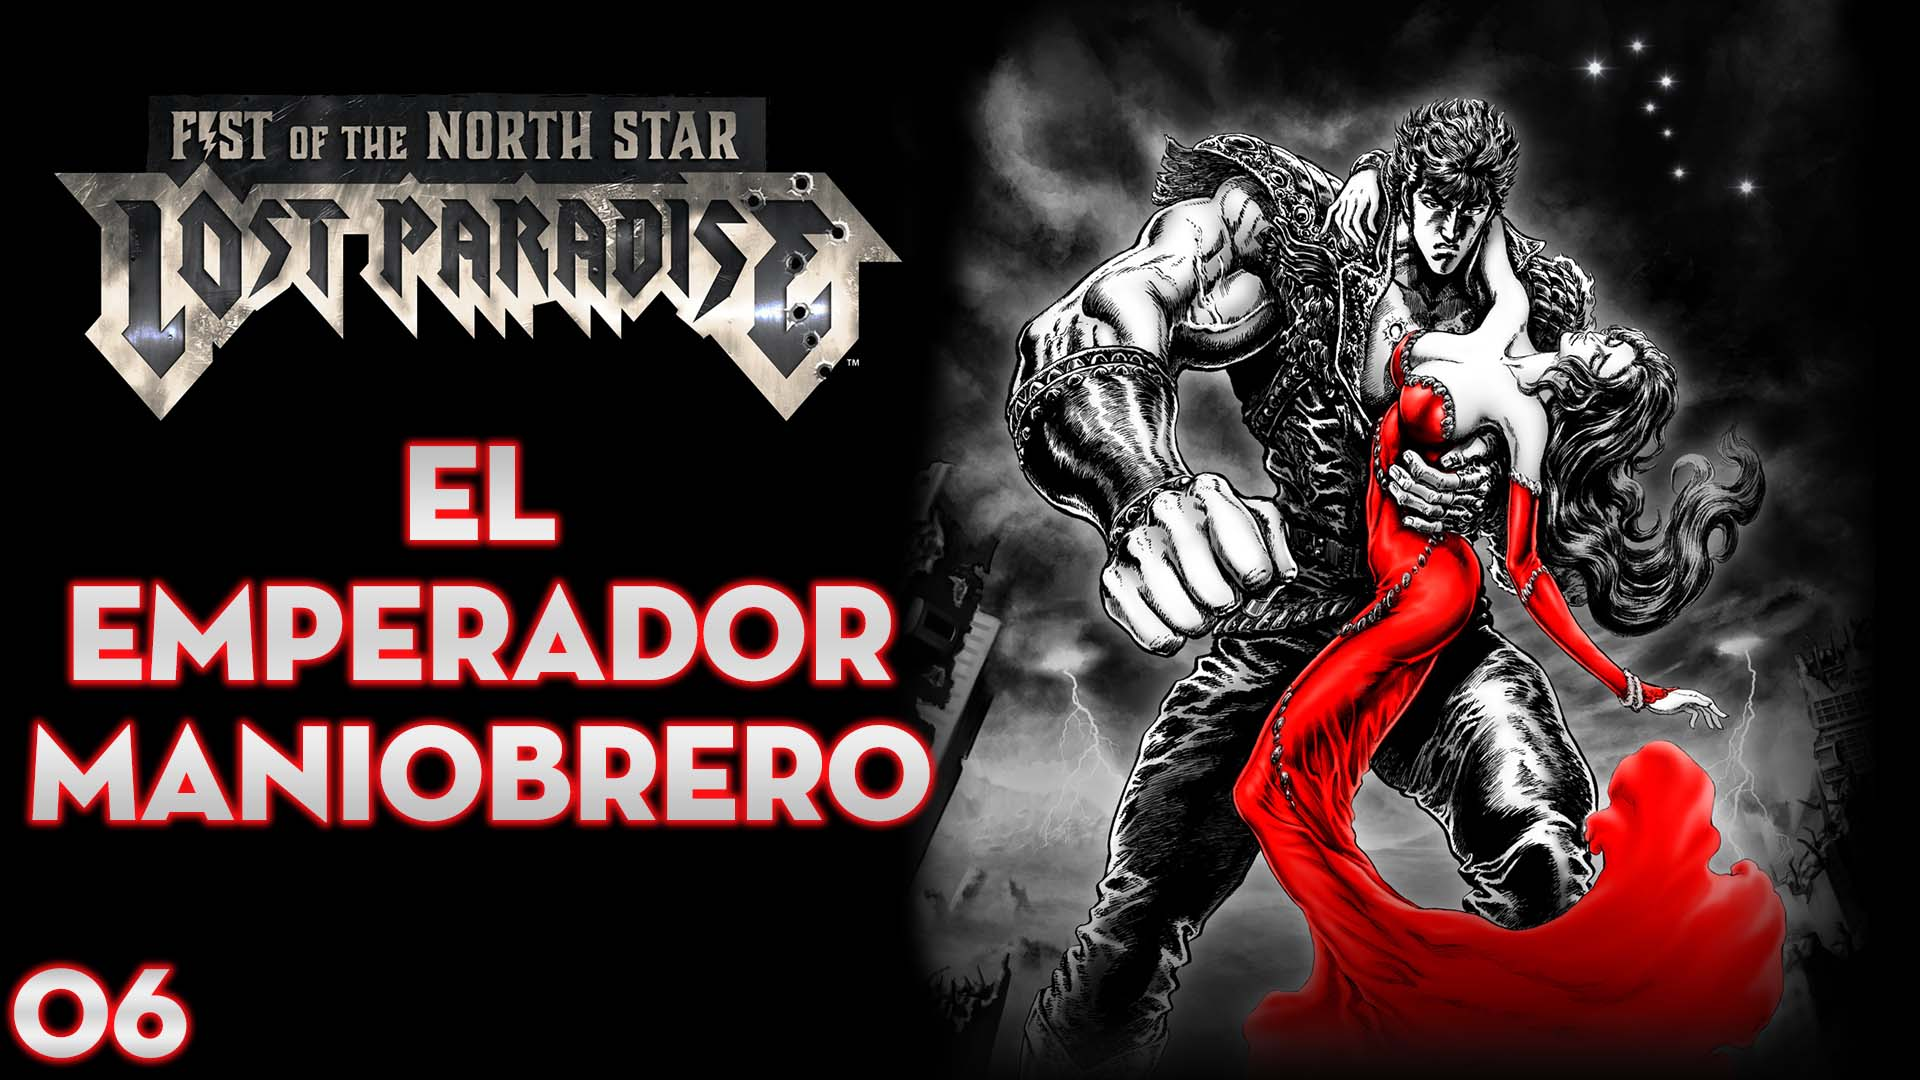 Serie Fist of the North Star: Lost Paradise #6 – El emperador maniobrero